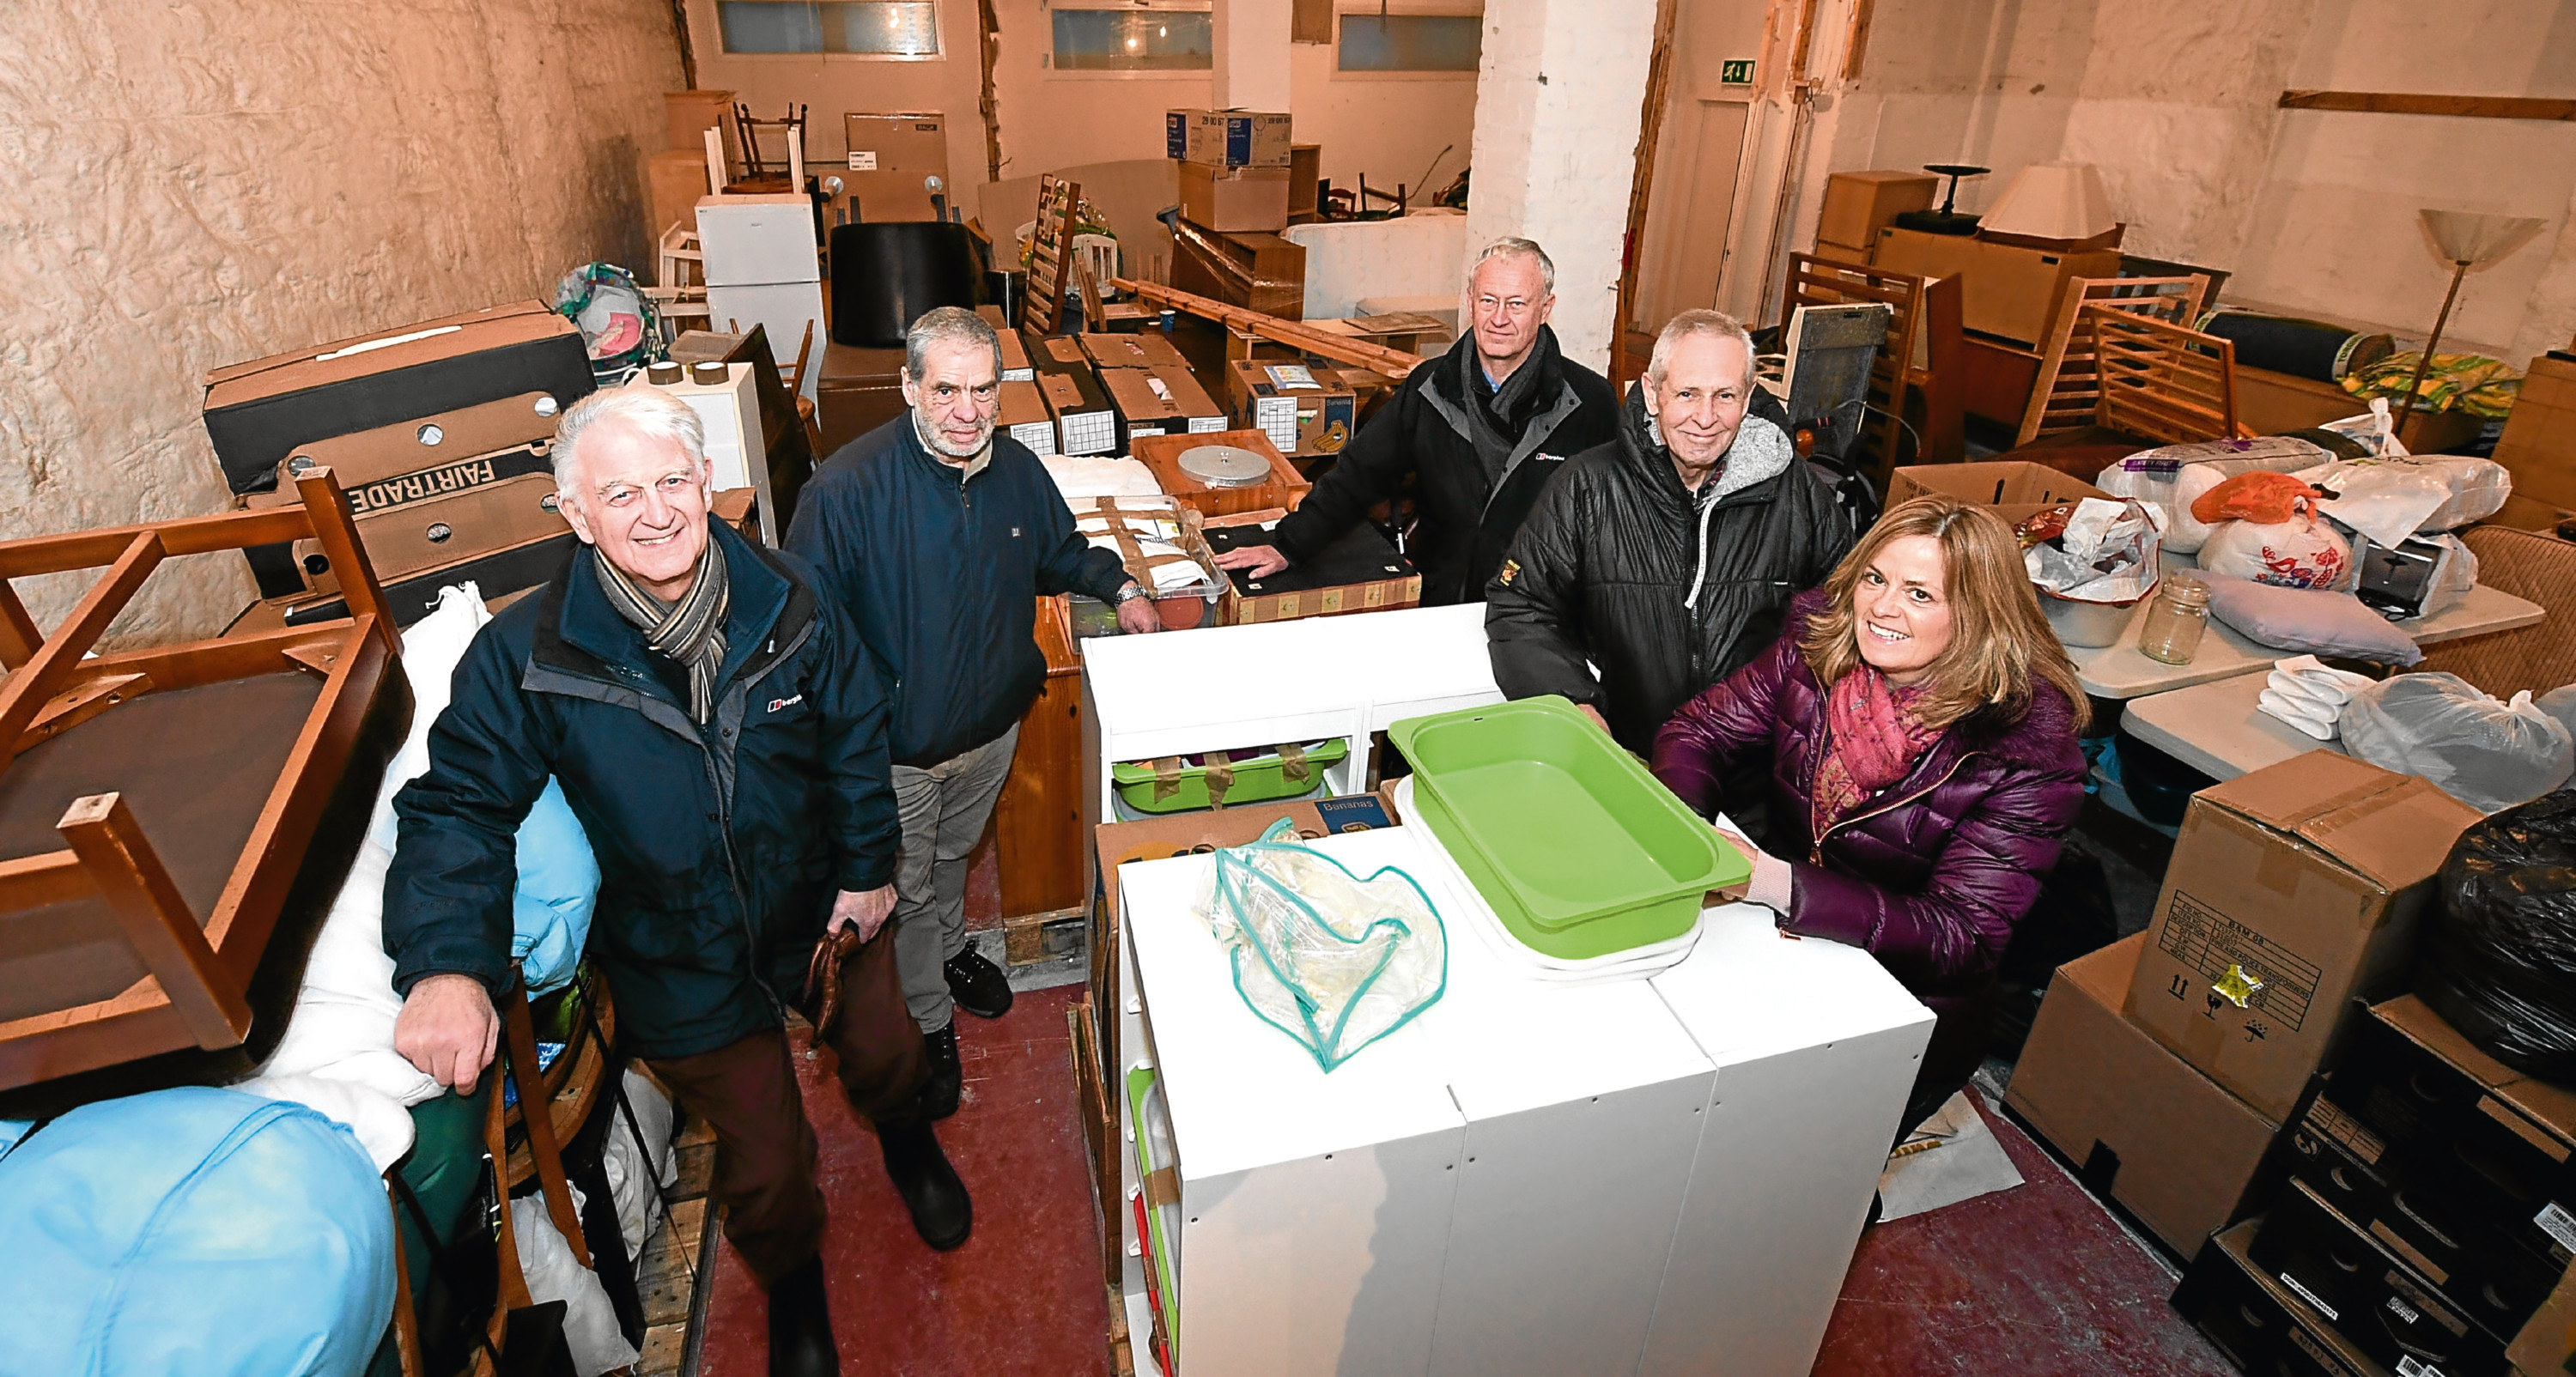 Rotairians have been collecting goods to be shipped off to Africa for a poverty project.     .....see story Jon Hebditch.       Pictured - L-R Jack Campbell, Sandy Lindsay, David Fryer, Alastair Brodie and Ishbel Sutherland.